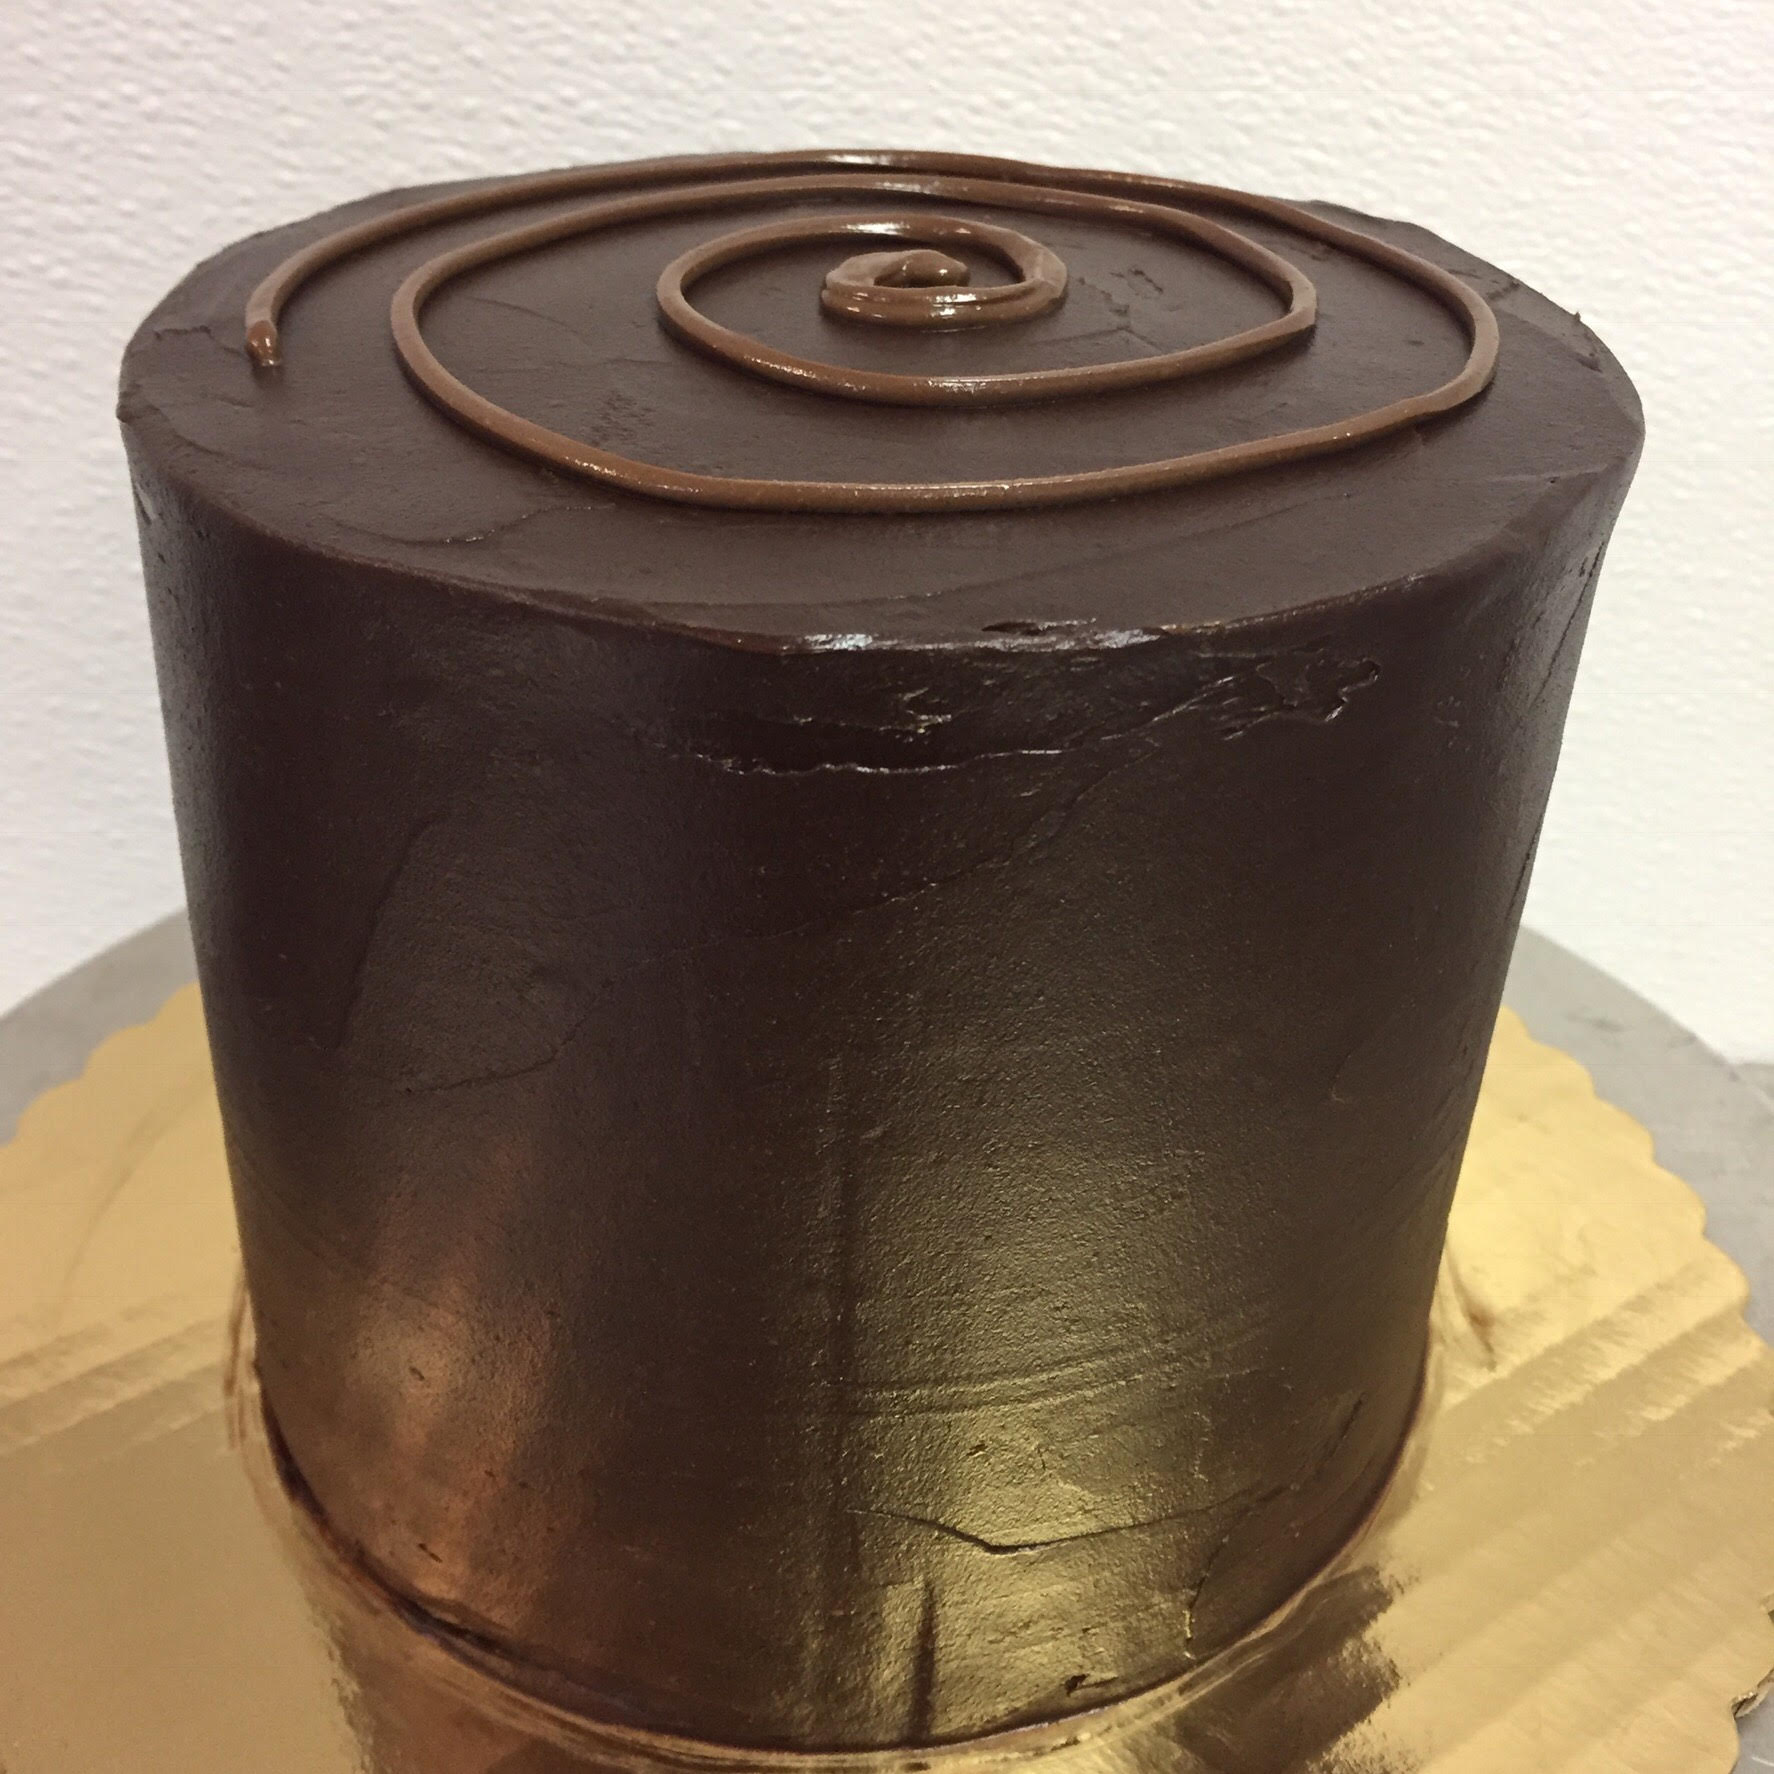 Nutella - 3 Layers of Chocolate cake filled with Nutella. Frosted with chocolate ganache. Topped with a Nutella Swirl   6 inch $40 8 inch $50